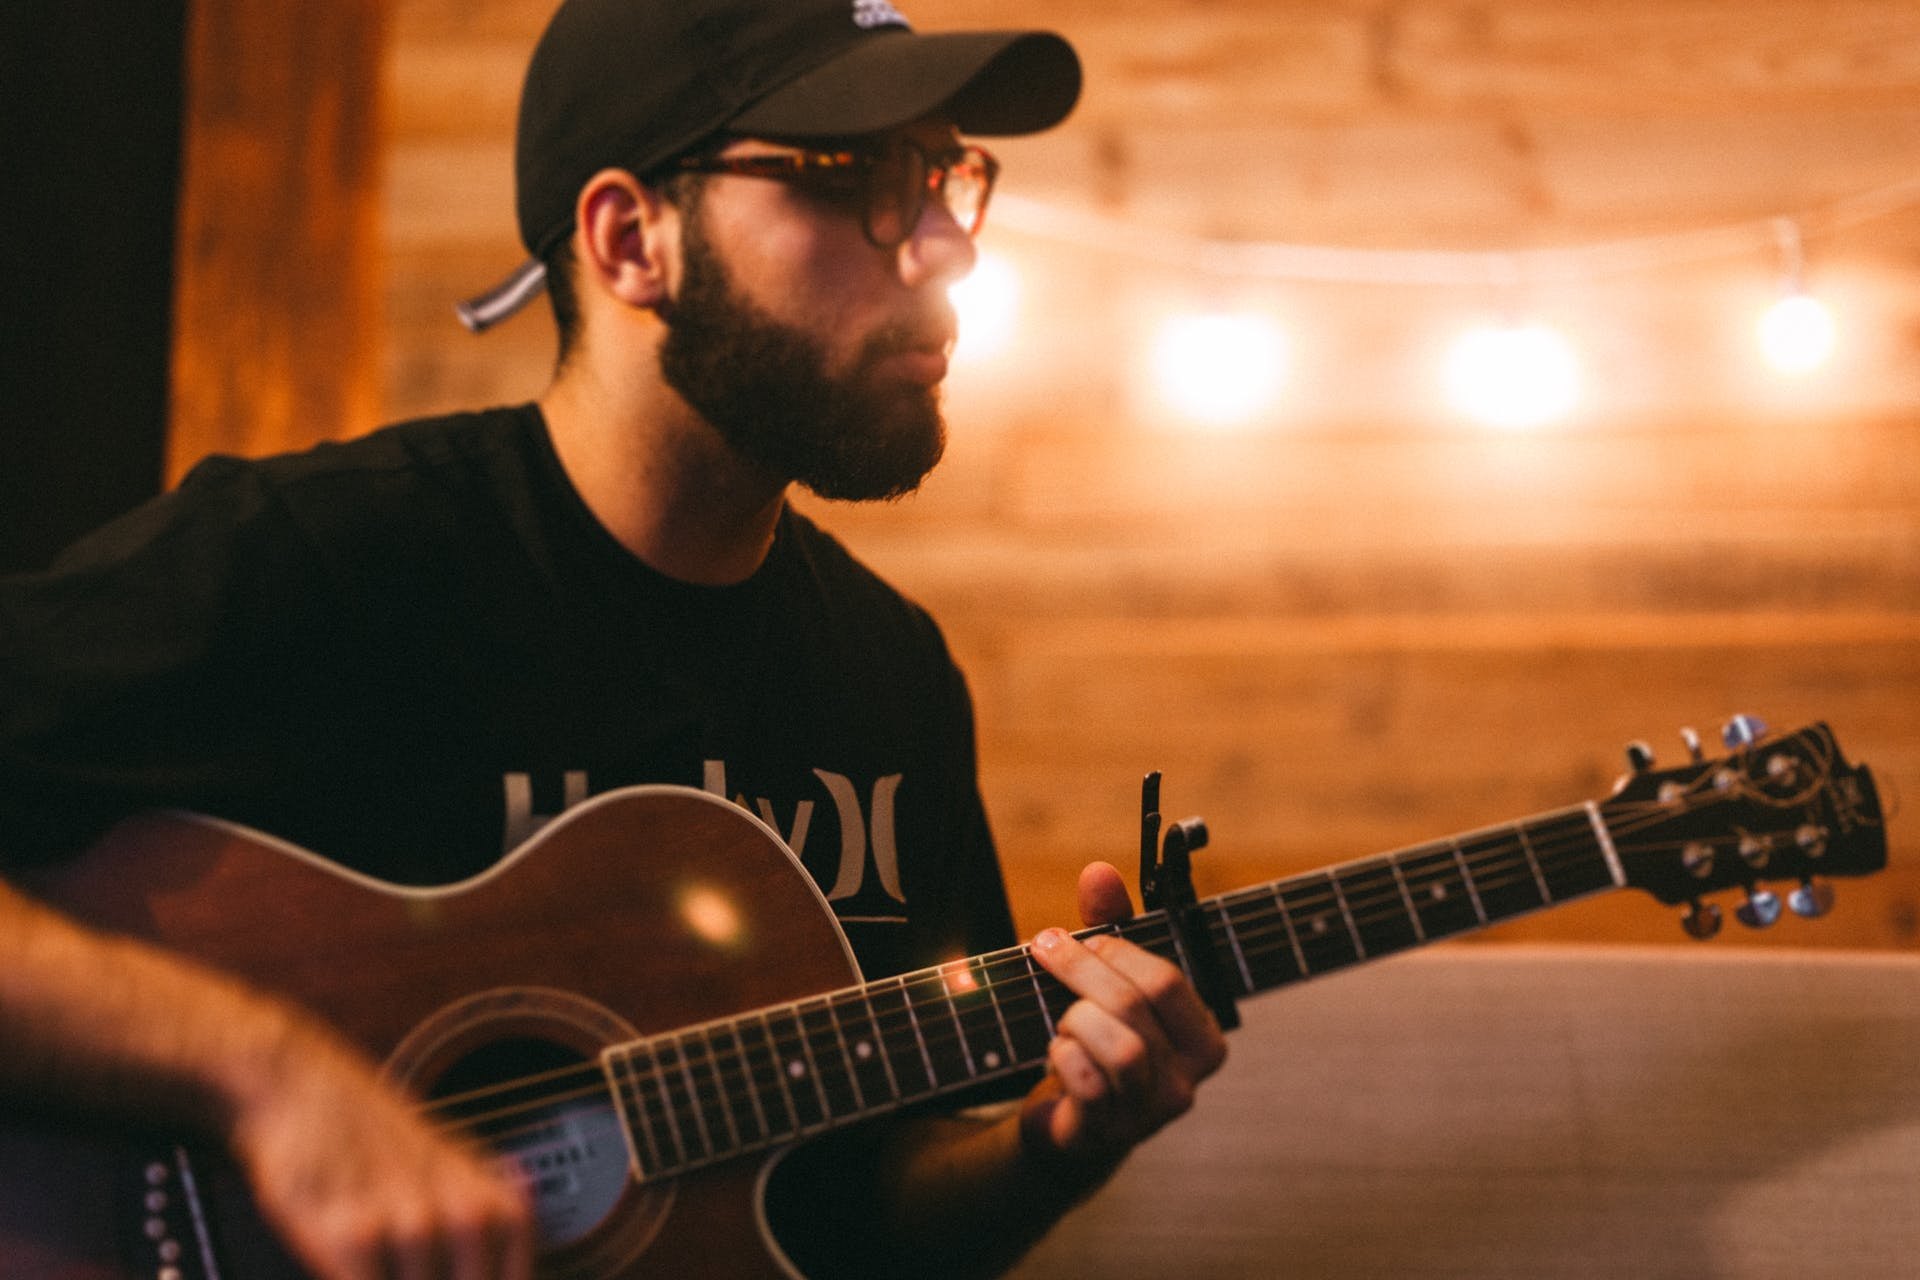 Free stock photo of acoustic guitar, calm lights, candlelight, church music